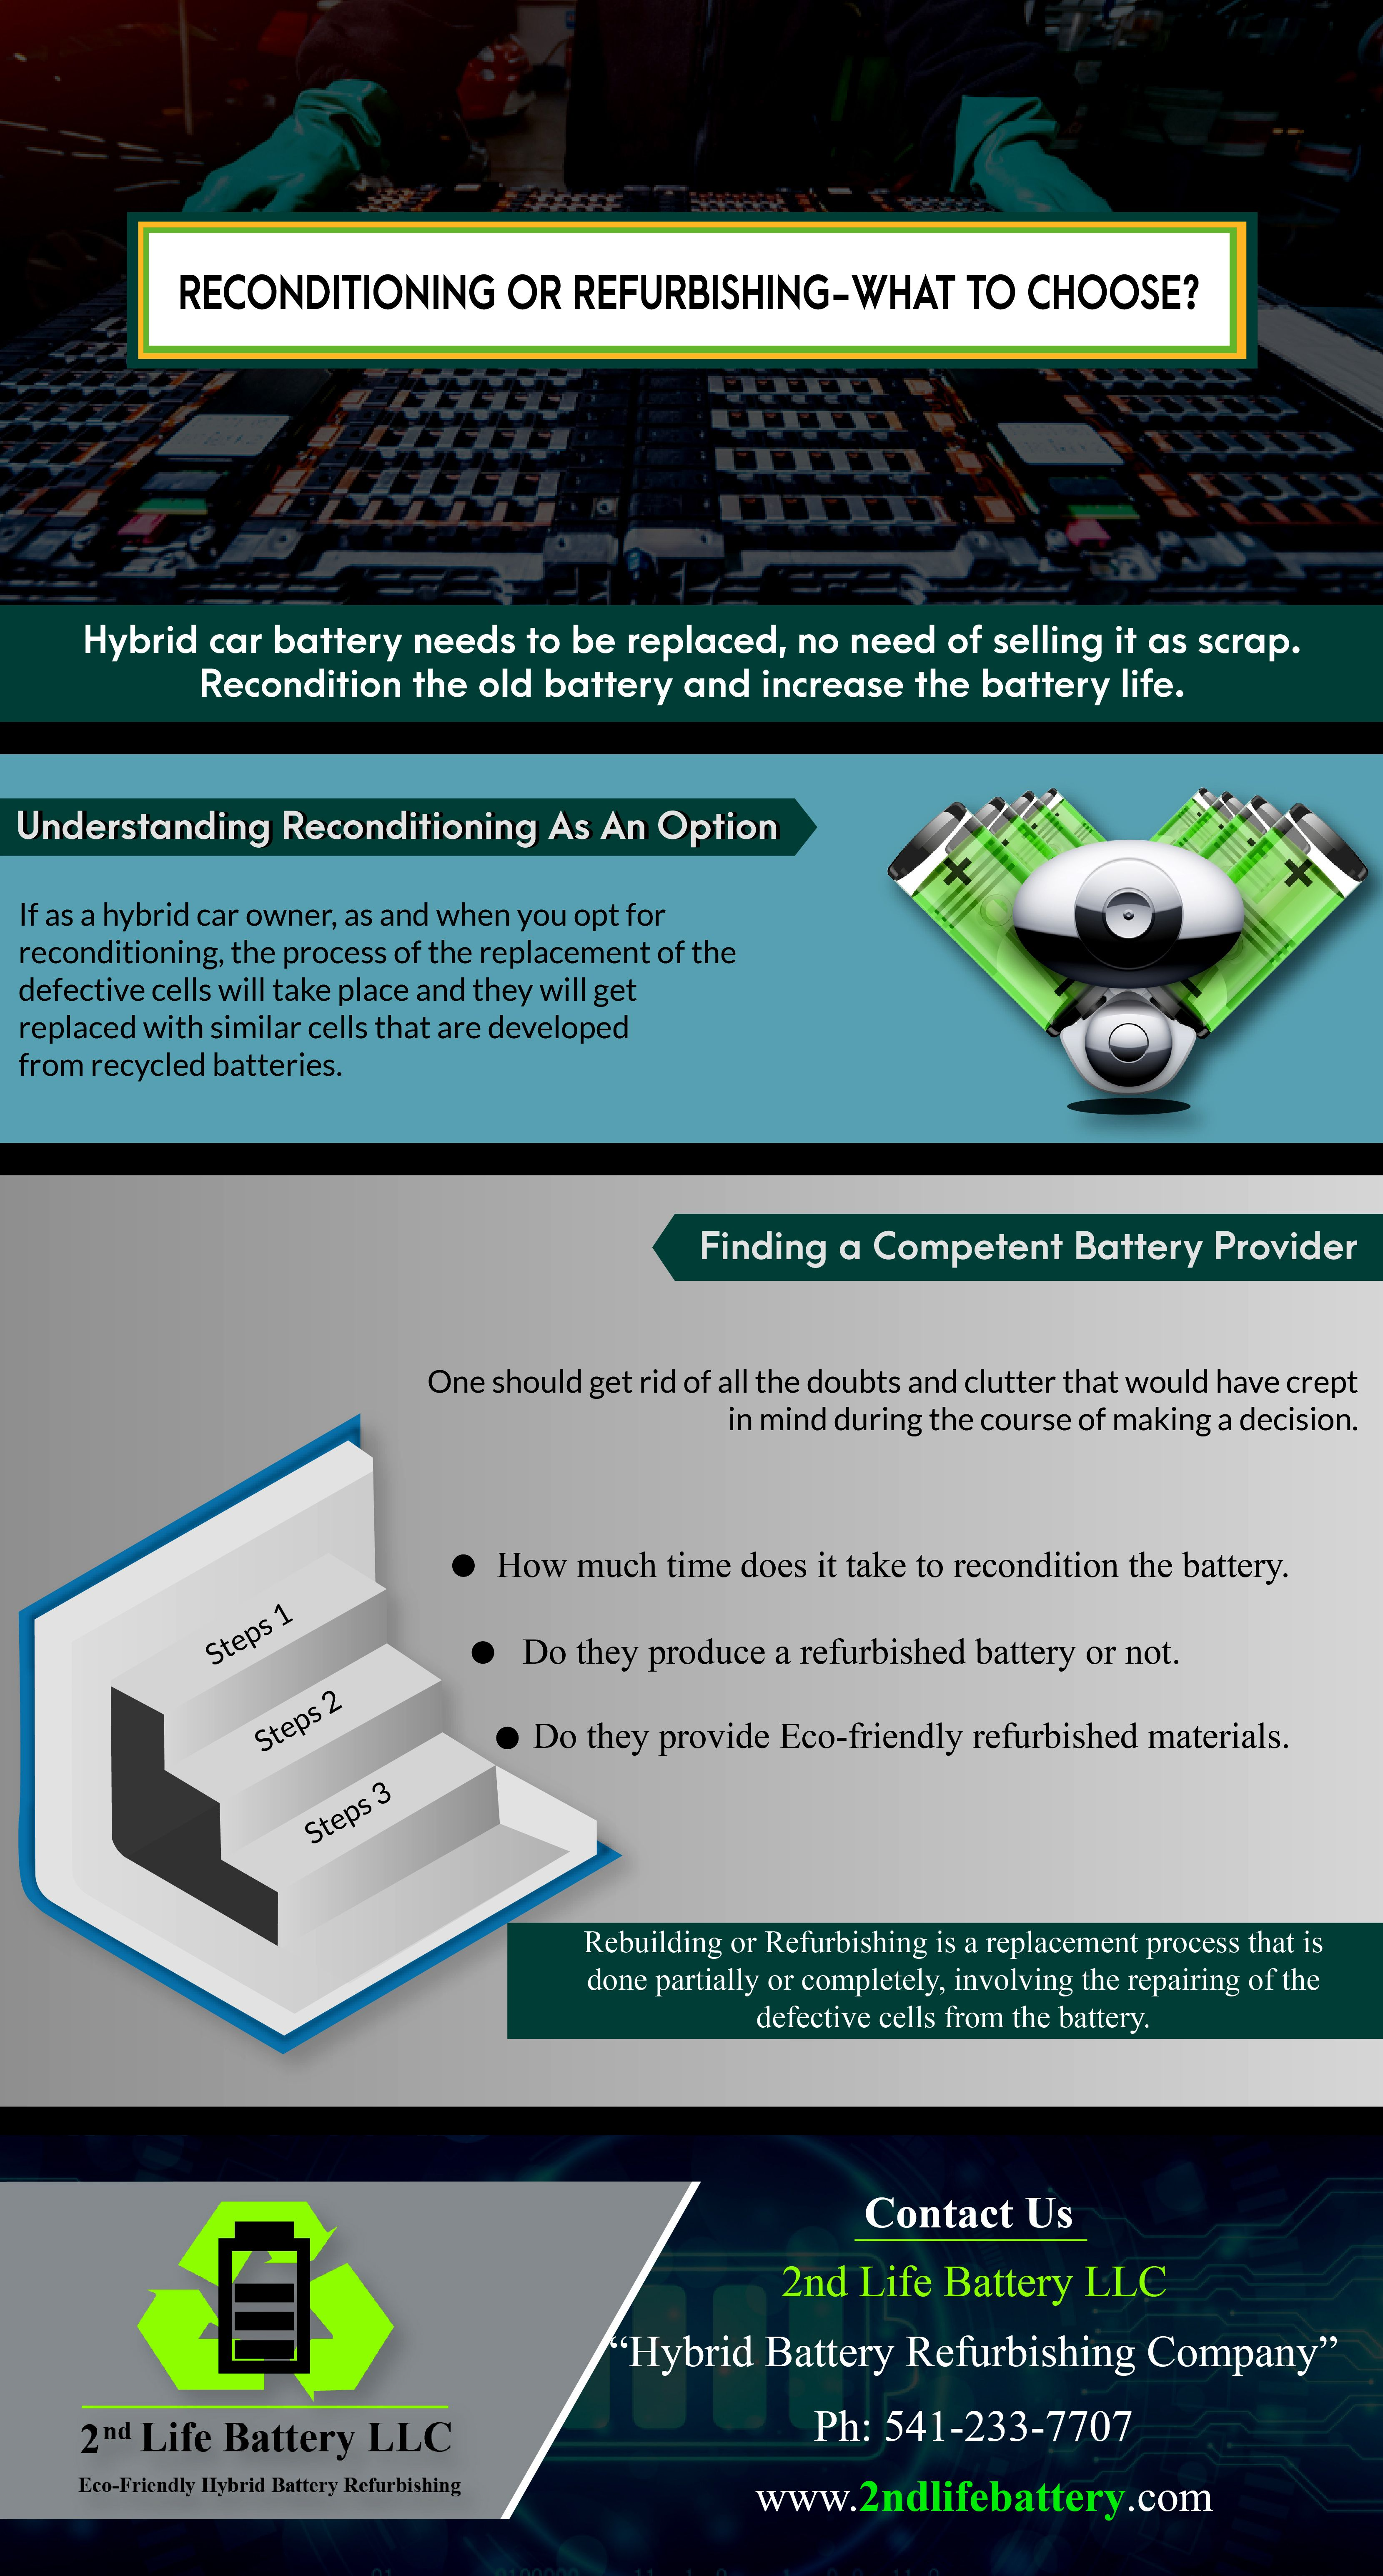 What To Choose From Hybrid Car Battery Reconditioning Or